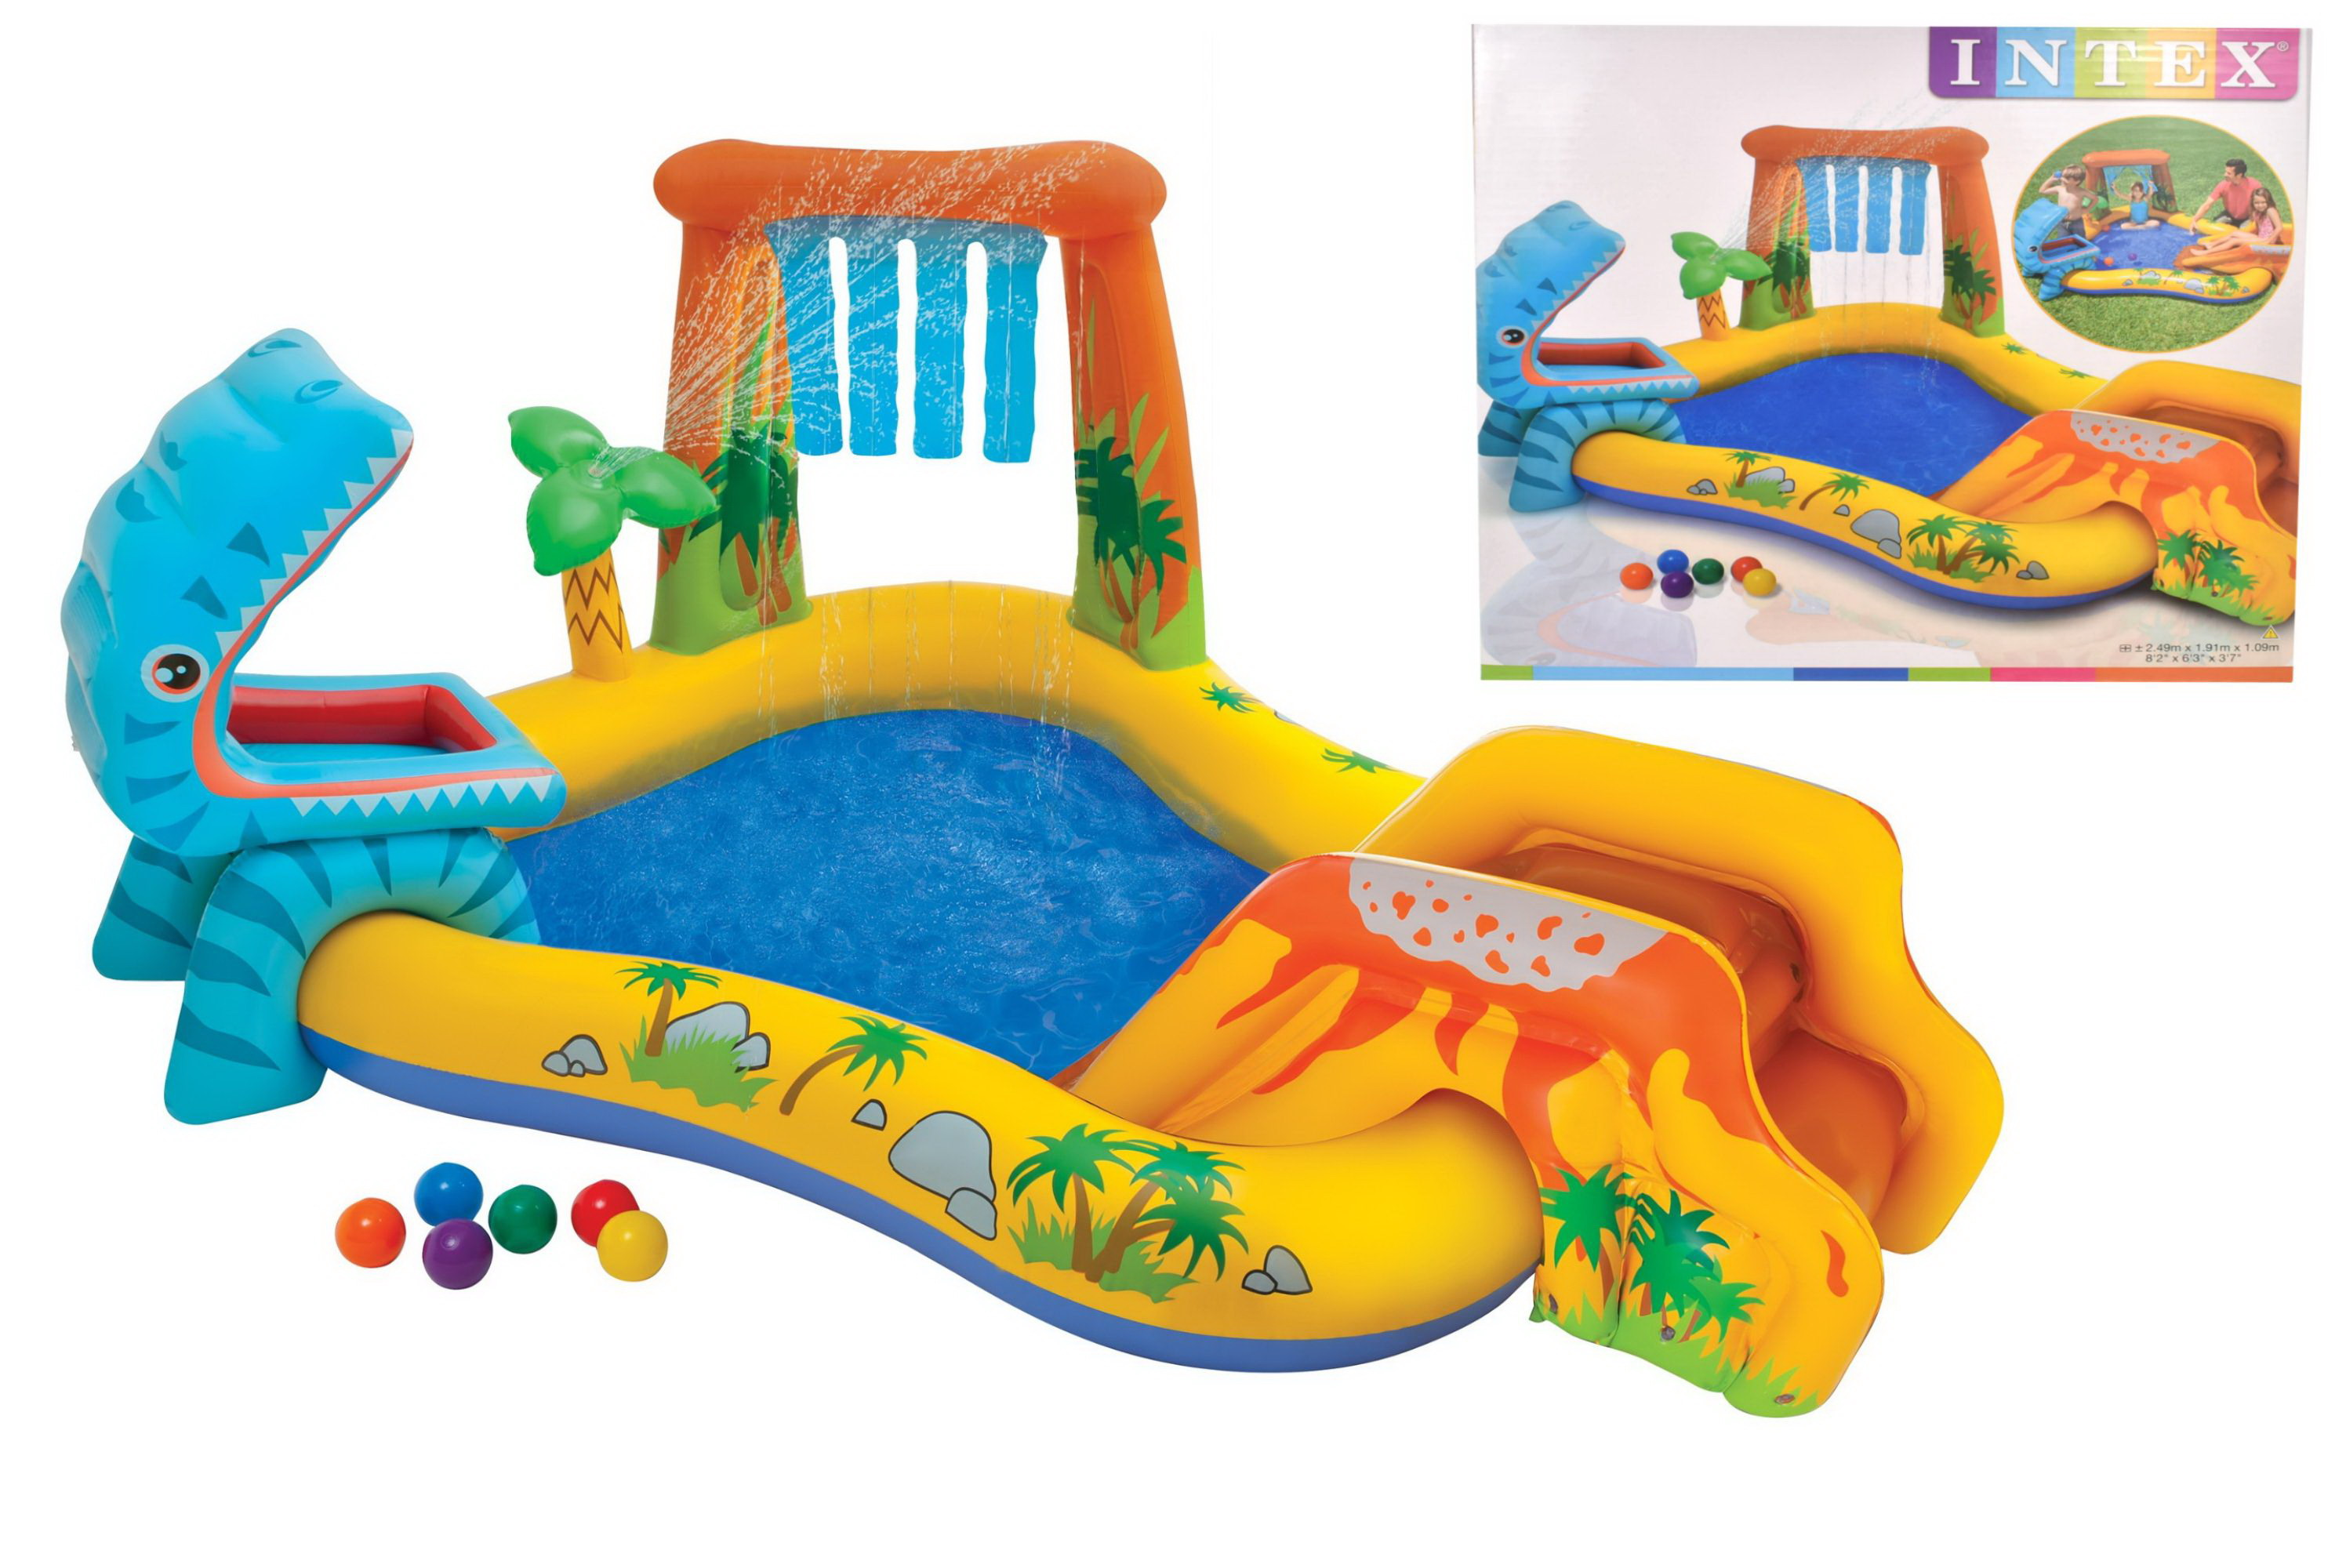 Intex Dinosaur Play Centre INFLATABLE SWIMMING POOL KIDS